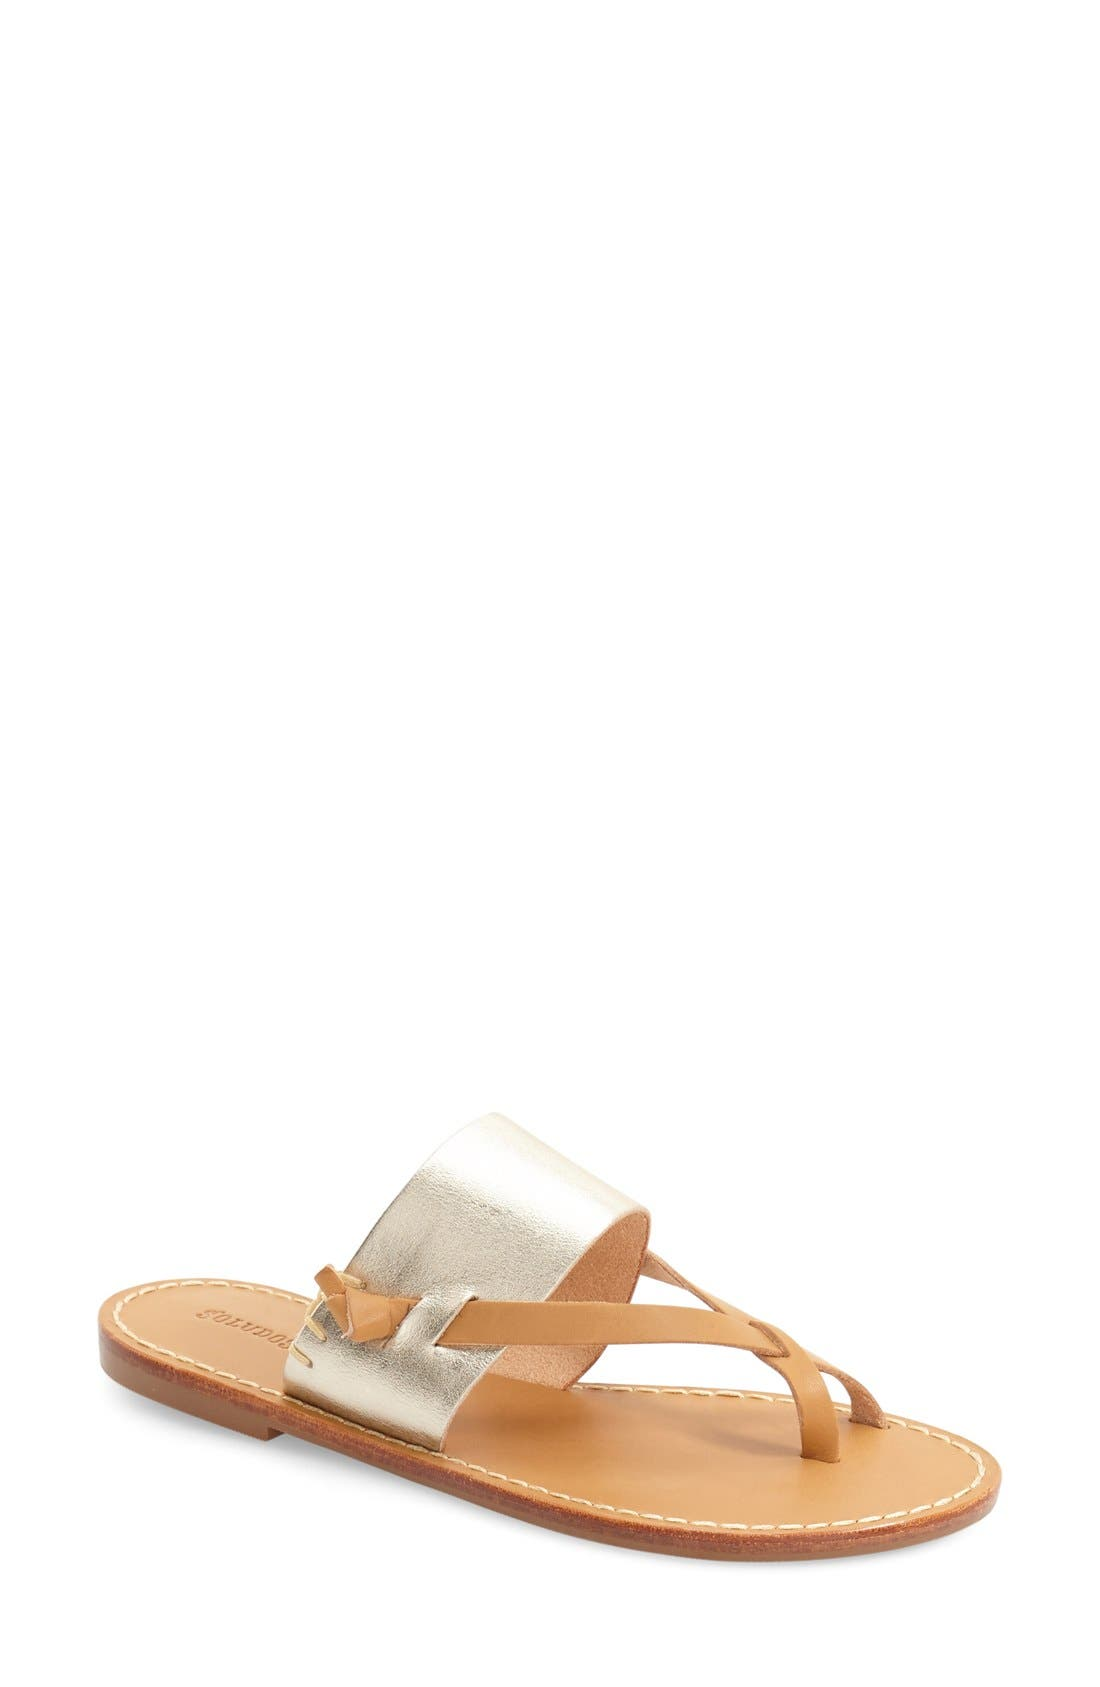 'Slotted' Thong Sandal,                             Main thumbnail 1, color,                             METALLIC/ PLATINUM LEATHER